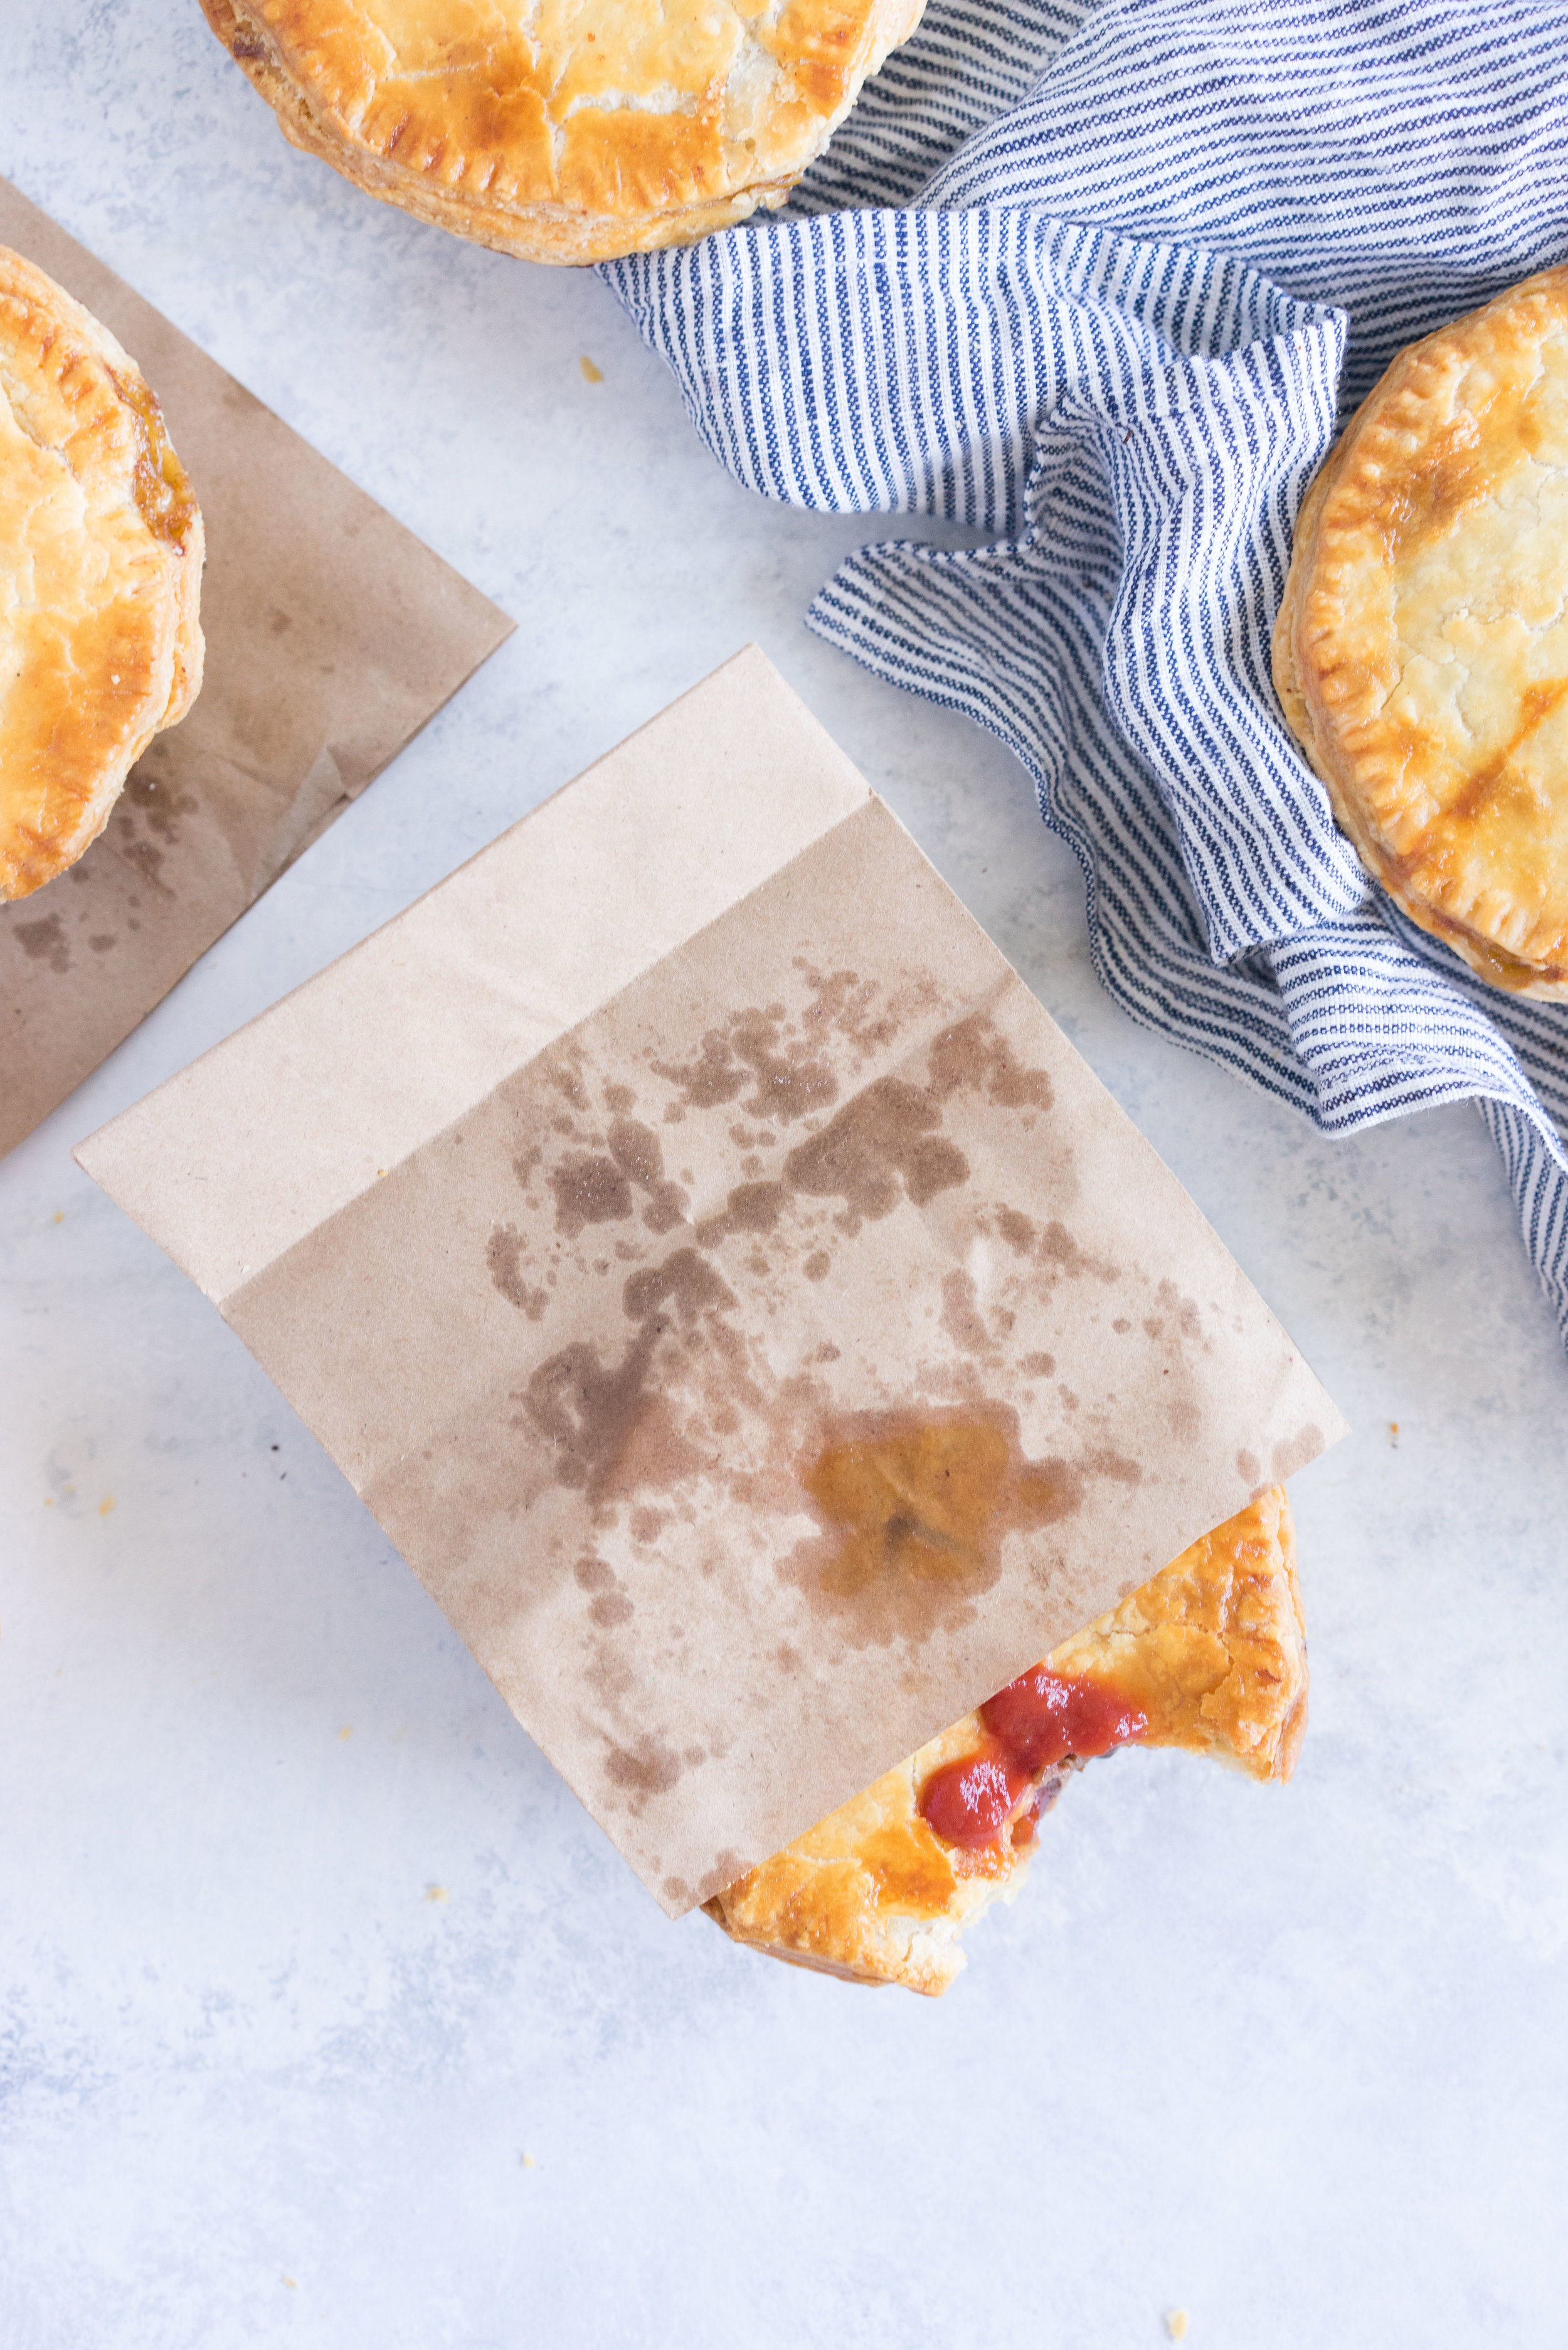 Individual steak and mushroom pies - flaky pastry encases a rich meaty filling with a flavourful gravy